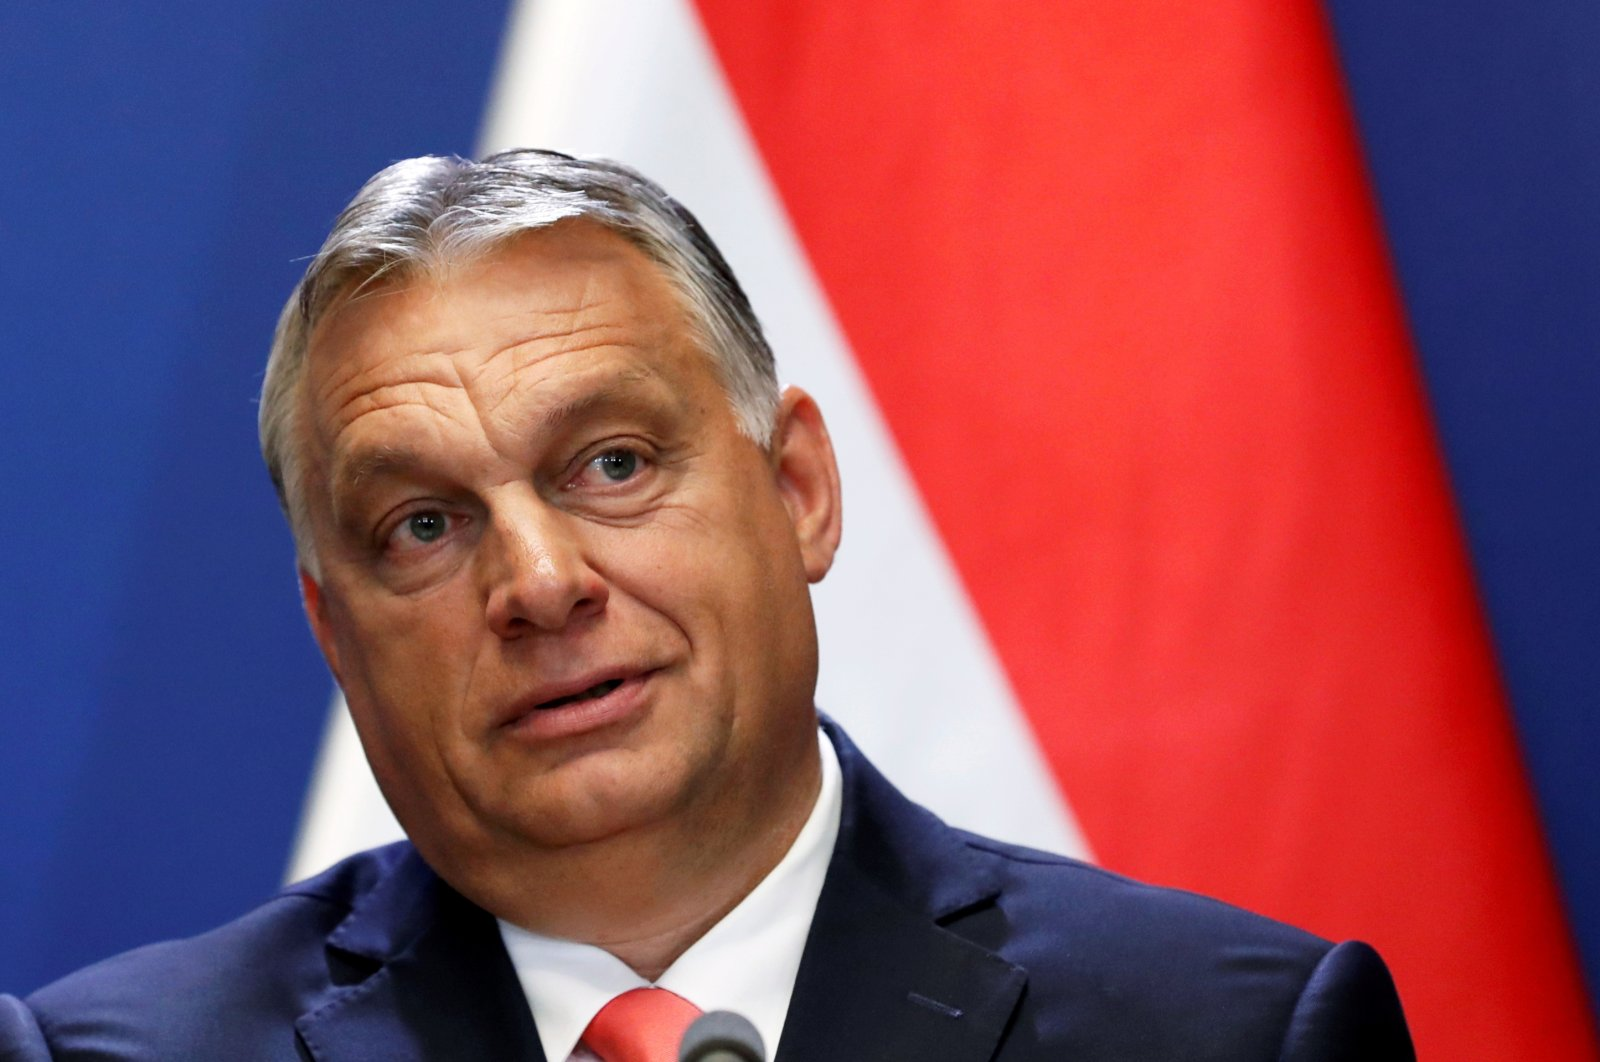 Hungary's Prime Minister Viktor Orban holds a news conference in Budapest, Hungary, June 12, 2020. (Reuters Photo)